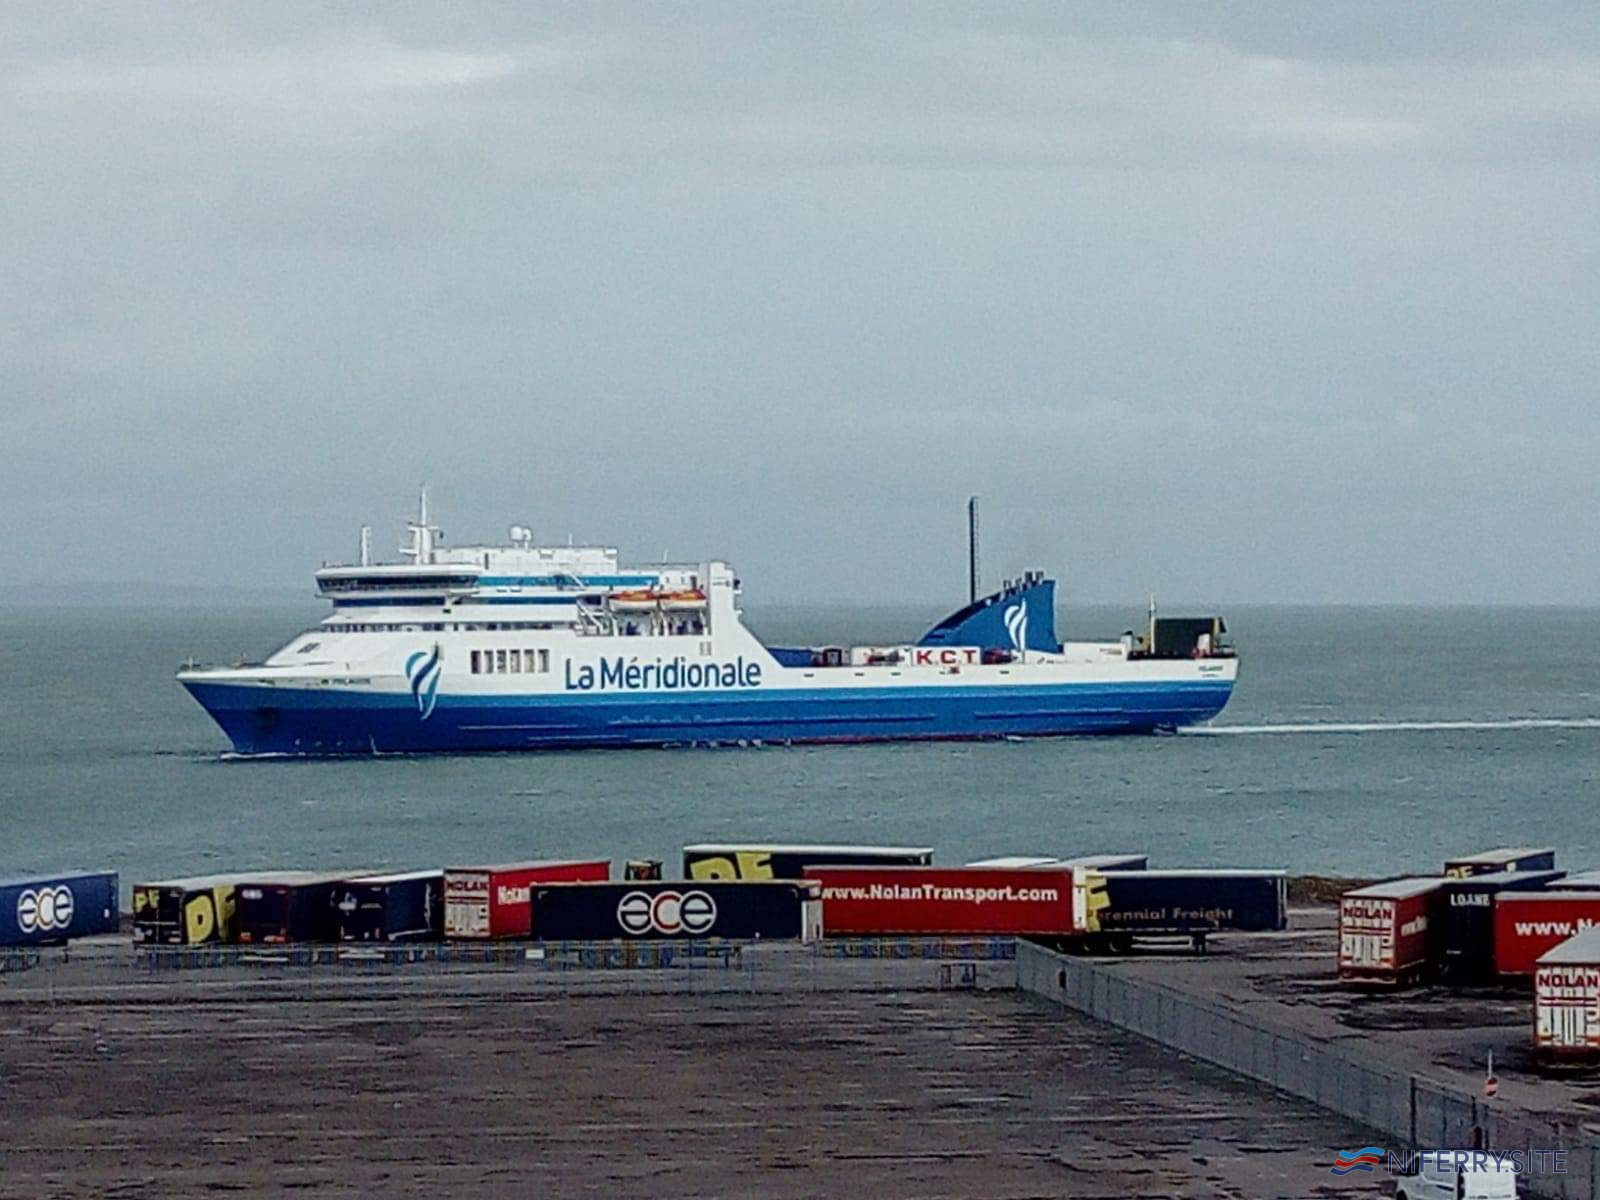 PELAGOS makes her maiden arrival at Rosslare Europort on the morning of March 25, 2021. Image © John Boyce.